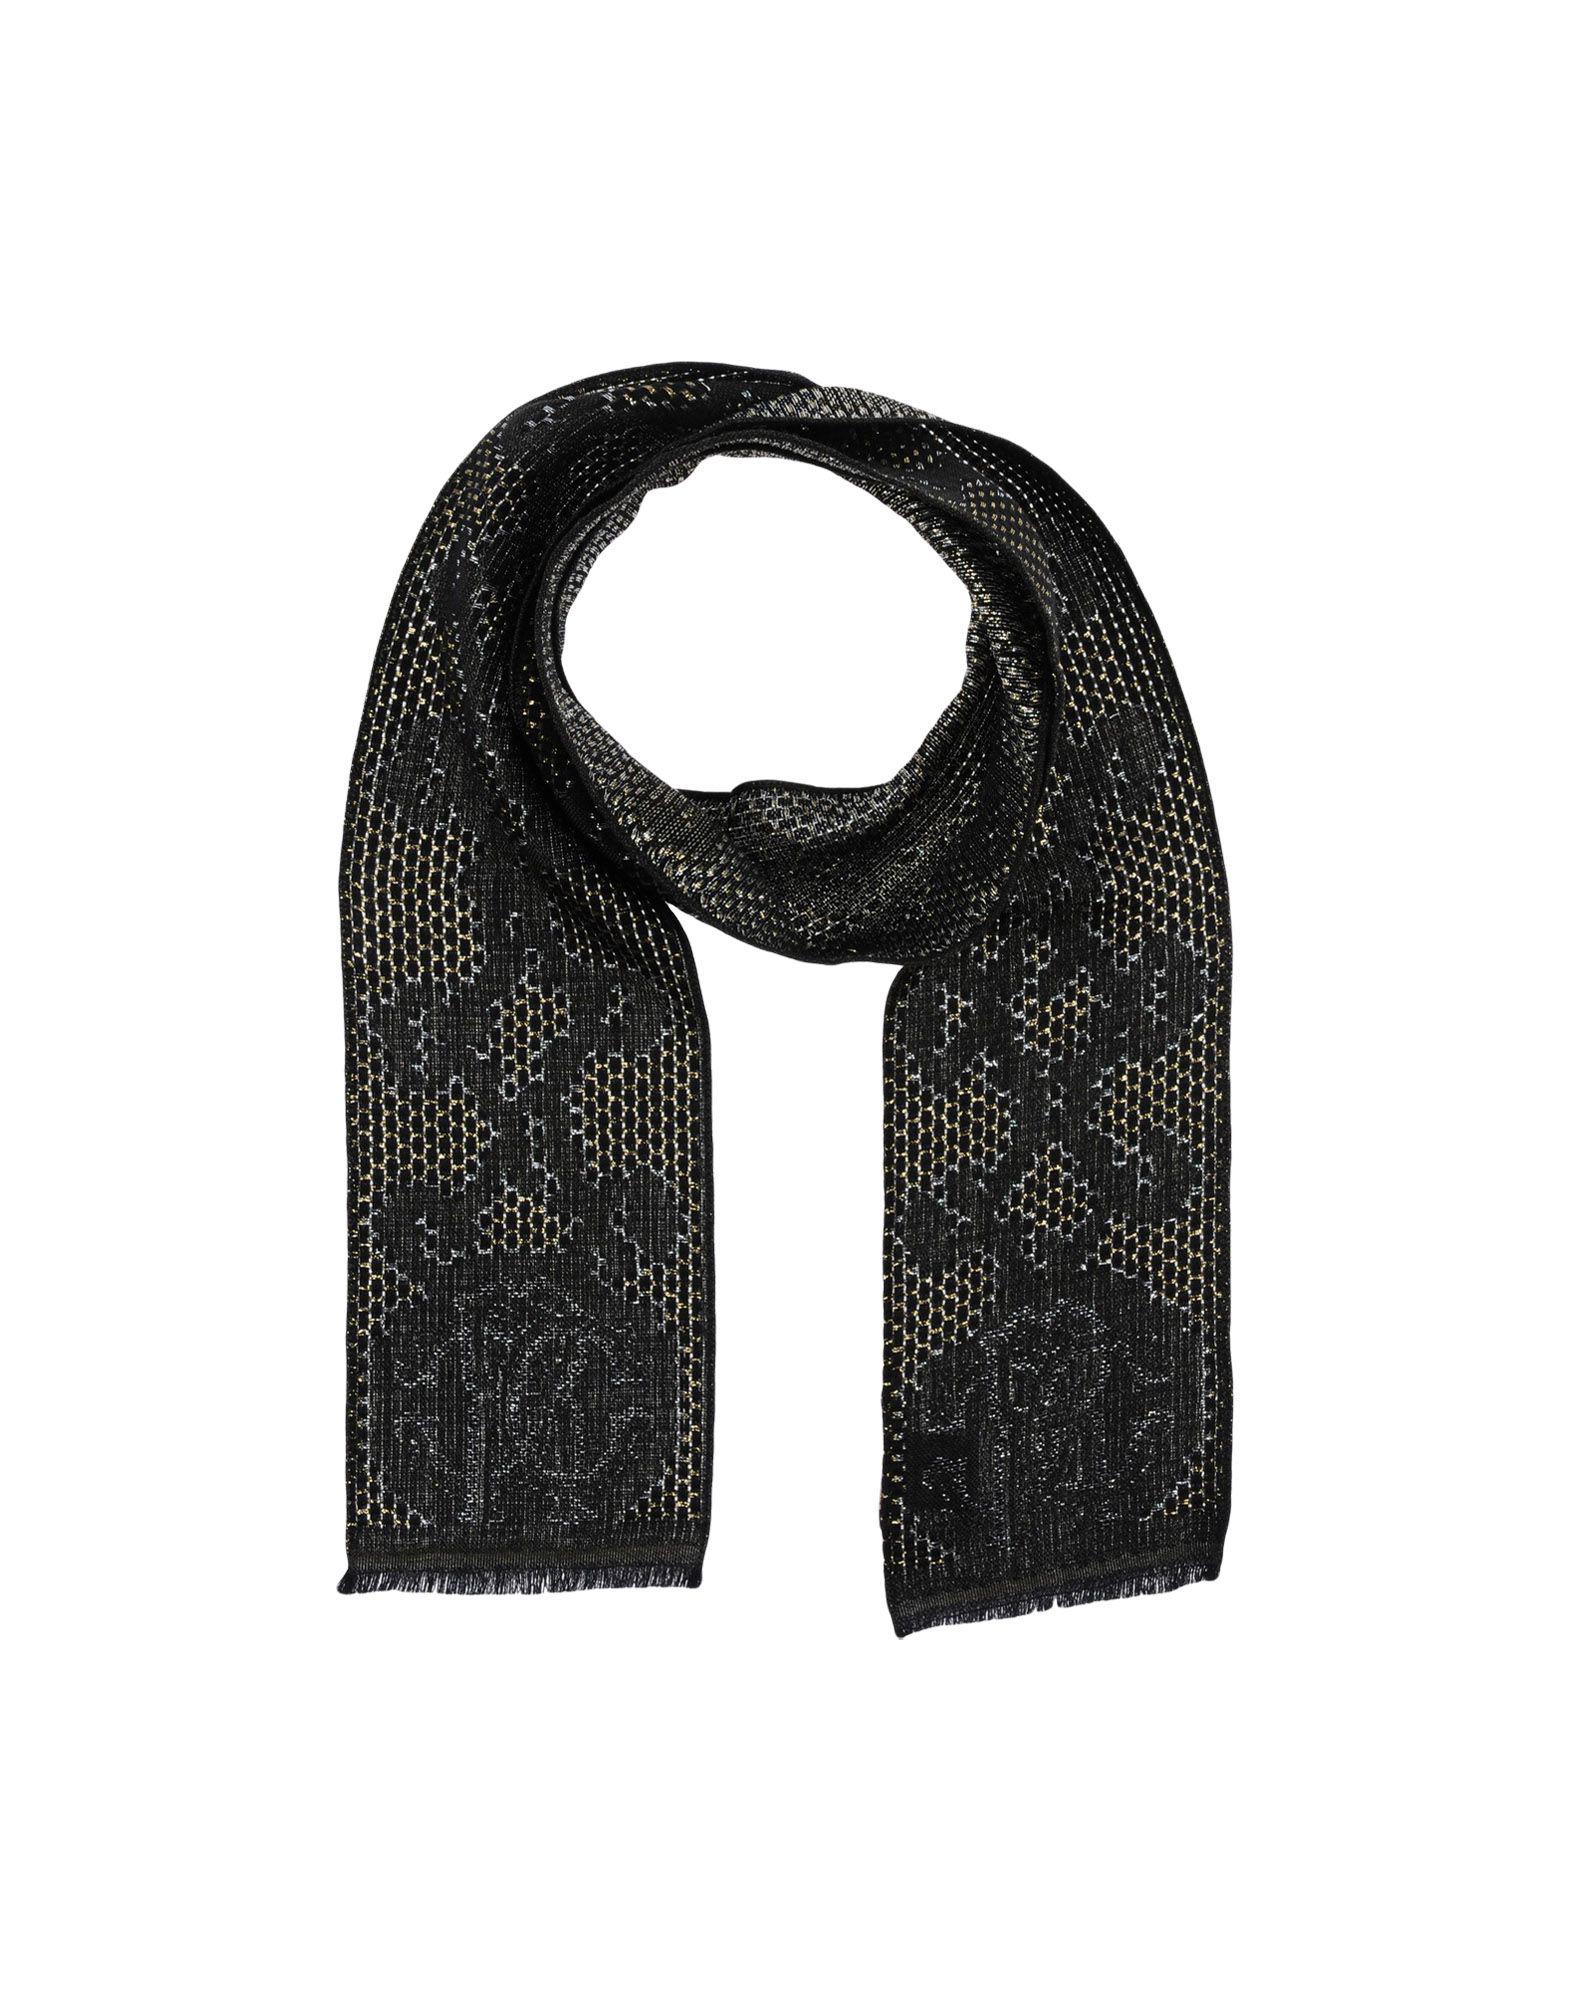 ACCESSORIES - Oblong scarves Maison Espin jlrtu